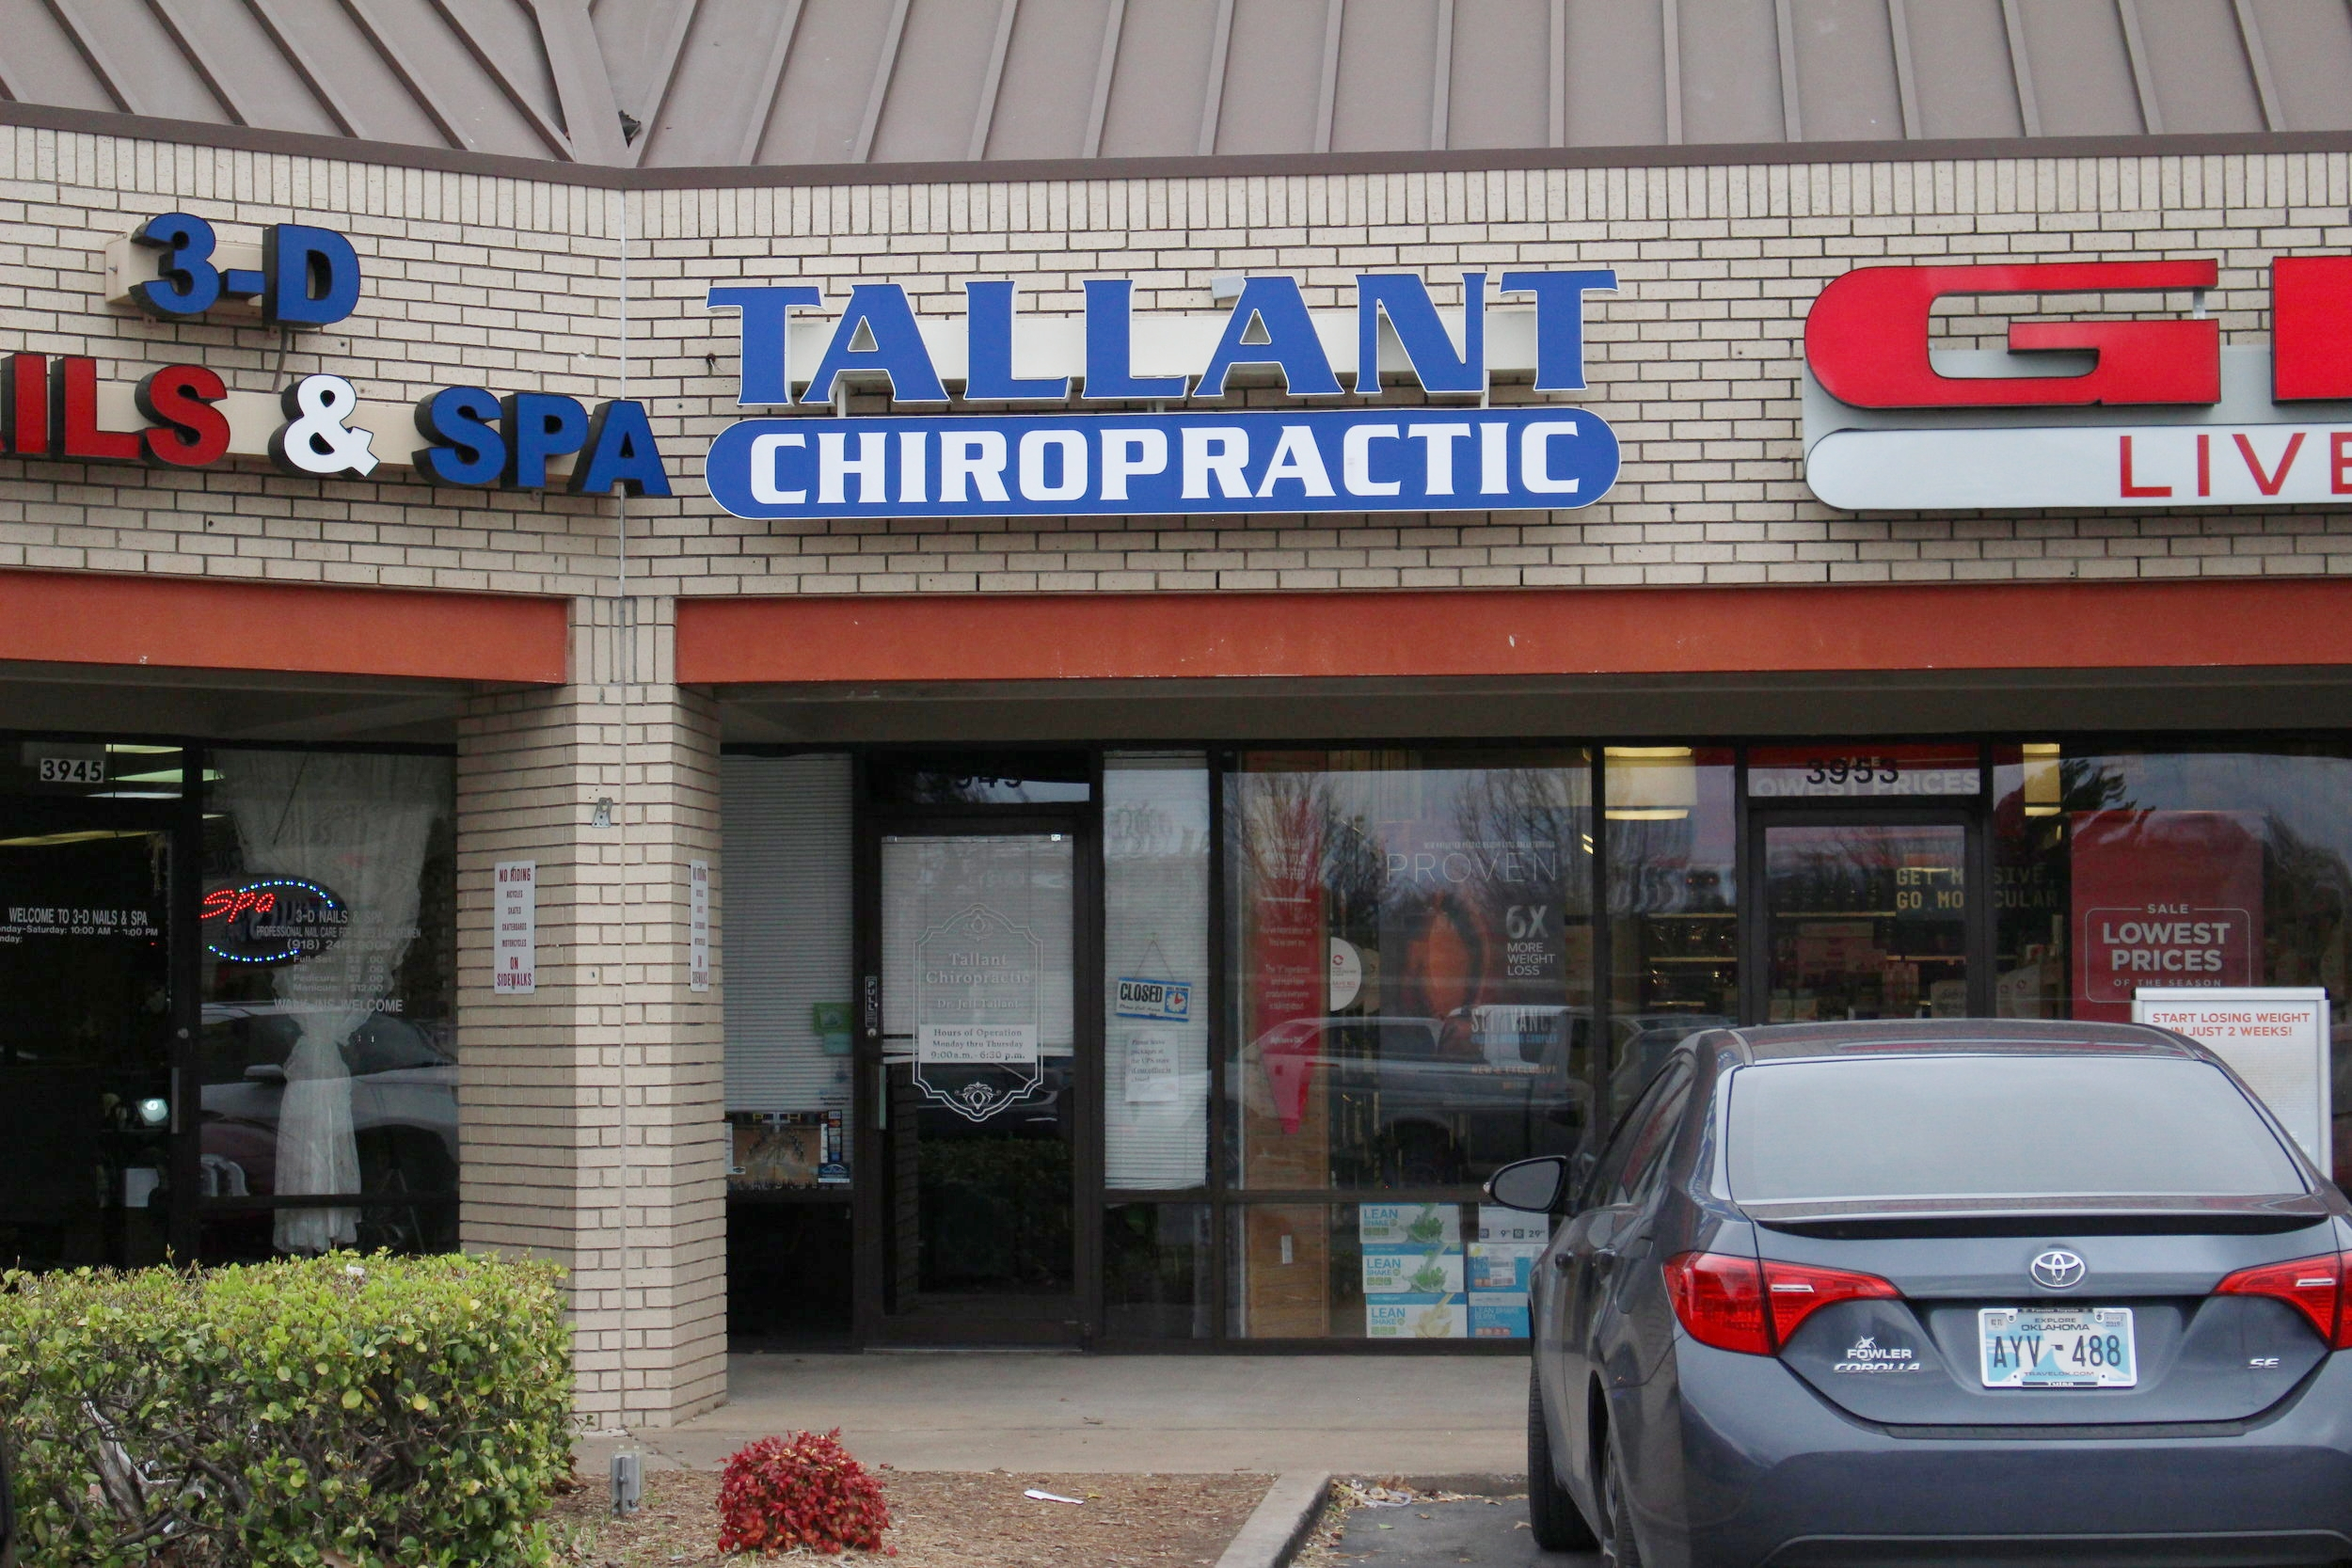 tallant chiropractic - springs village 3949 south highway 97